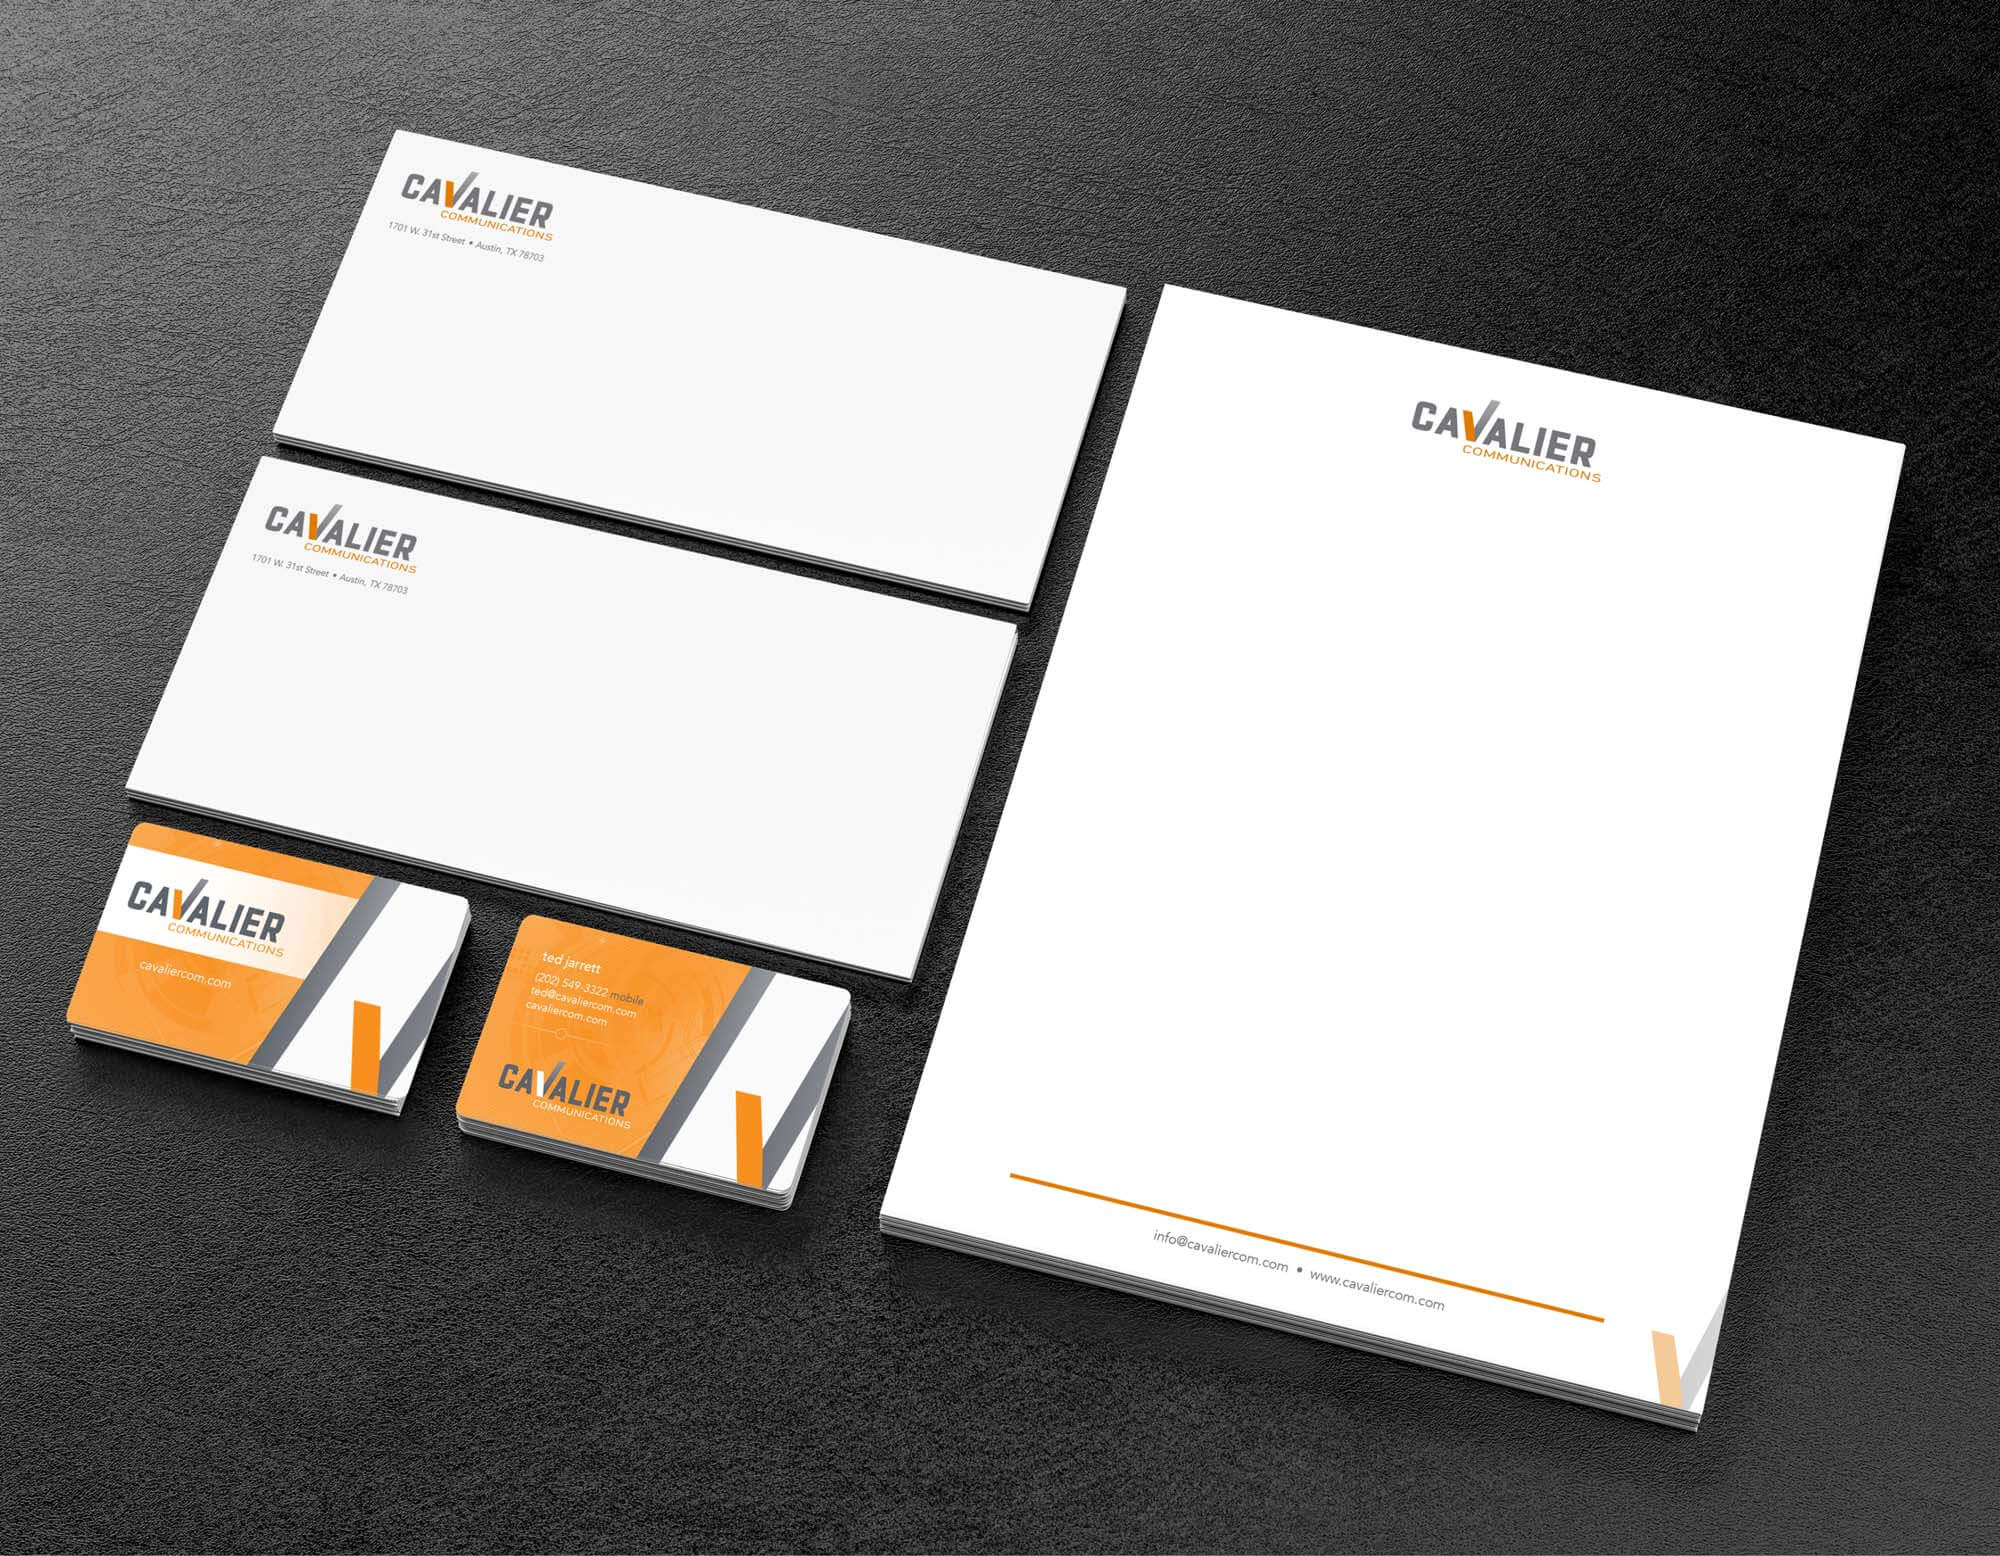 Cavalier Stationery